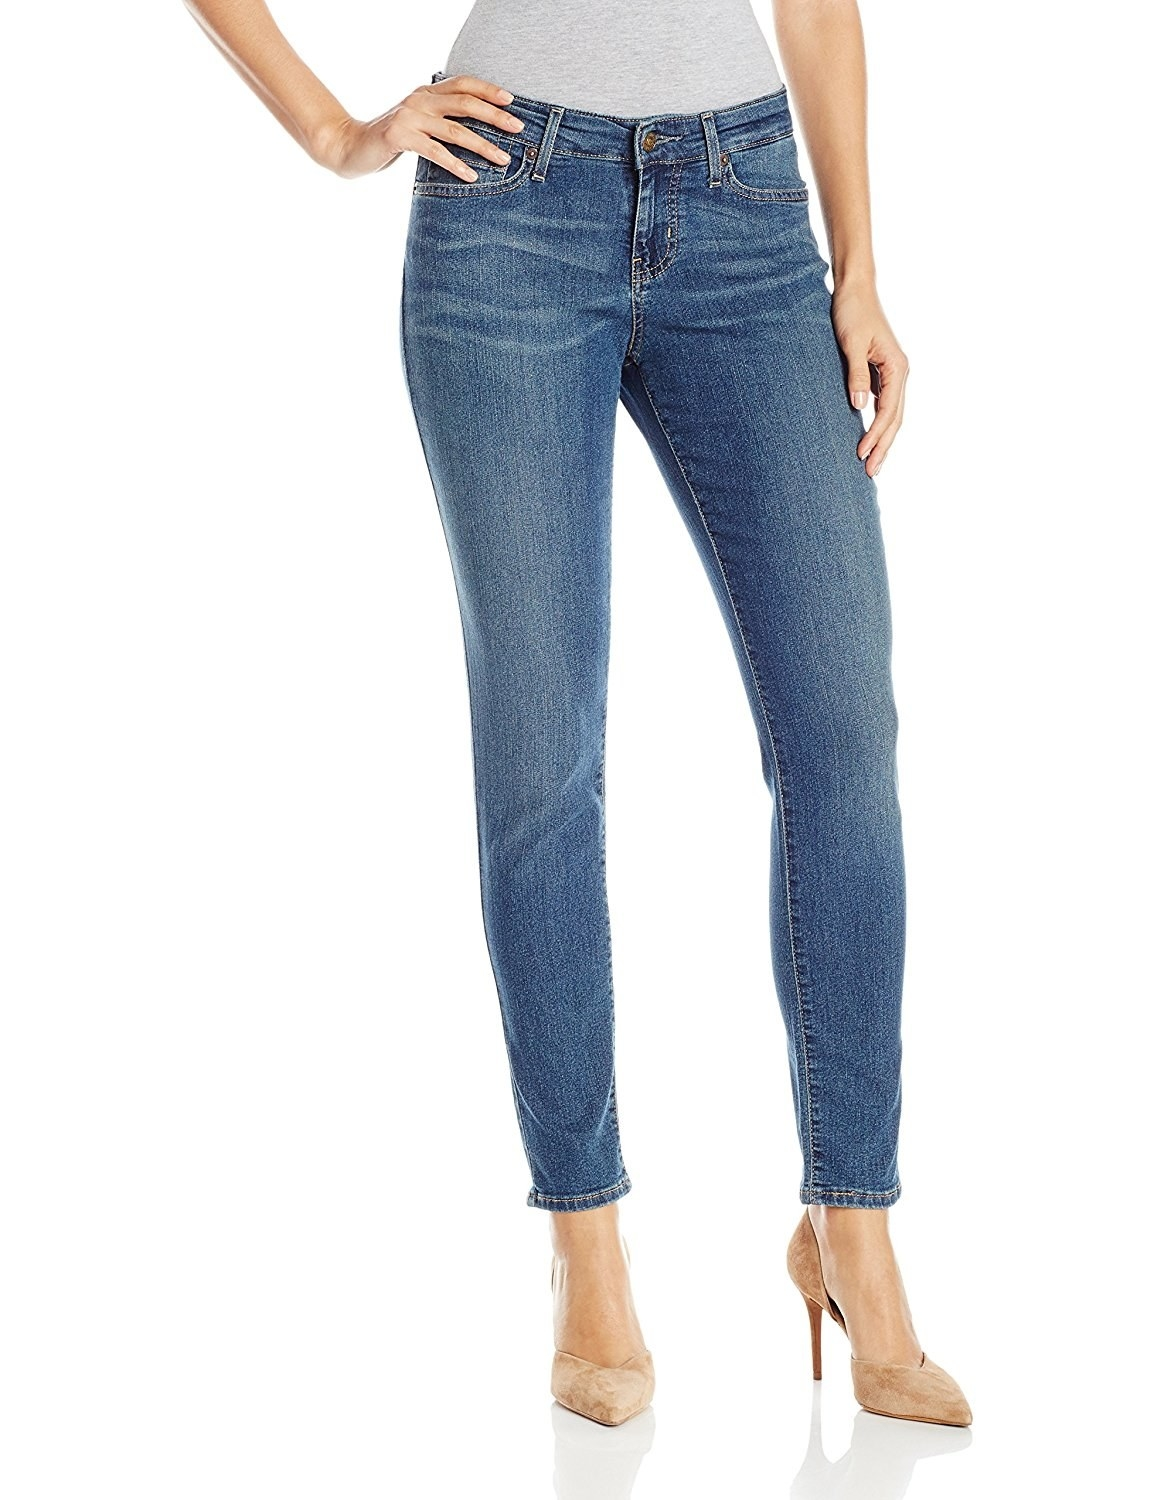 69c44d48d7e2f Incredibly soft skinny jeans that are so classic, so chic! Your legs will  have never been so in love.